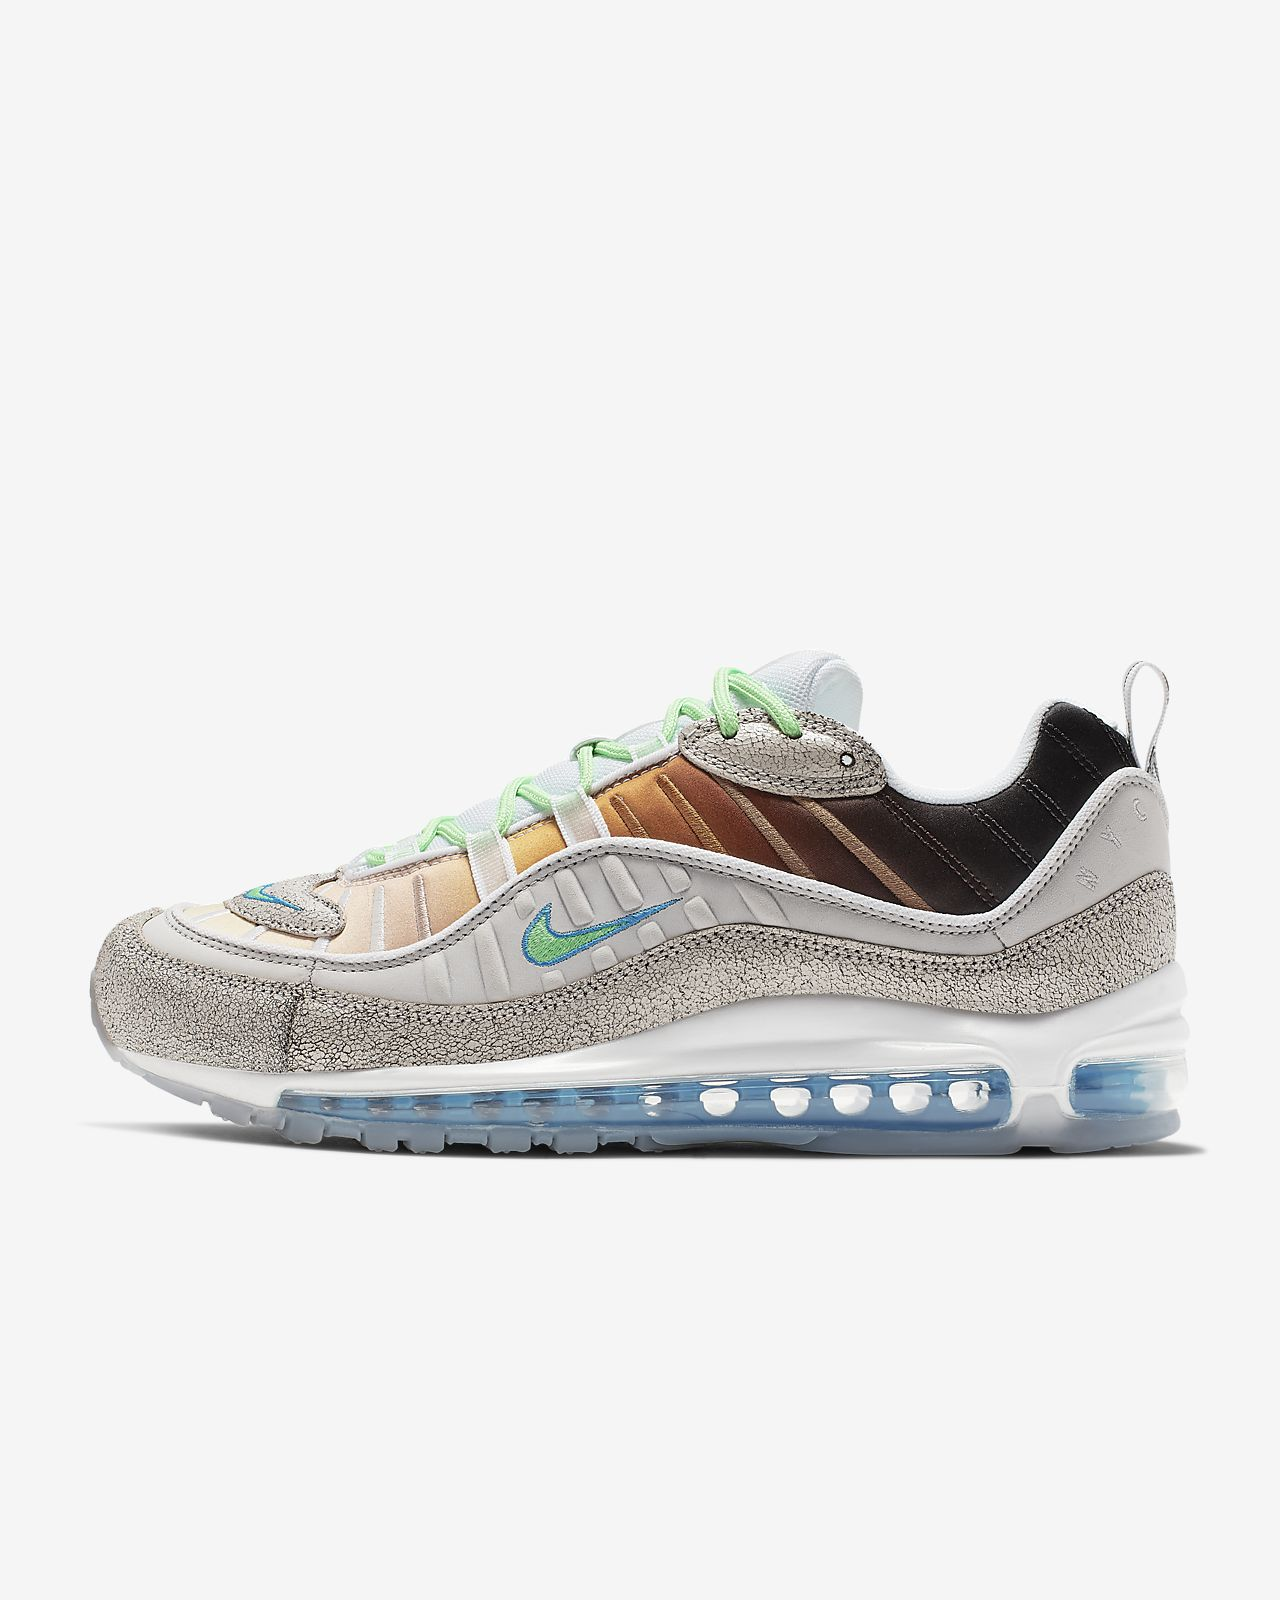 new style 78085 6d216 ... Nike Air Max 98 On Air Gabrielle Serrano Shoe